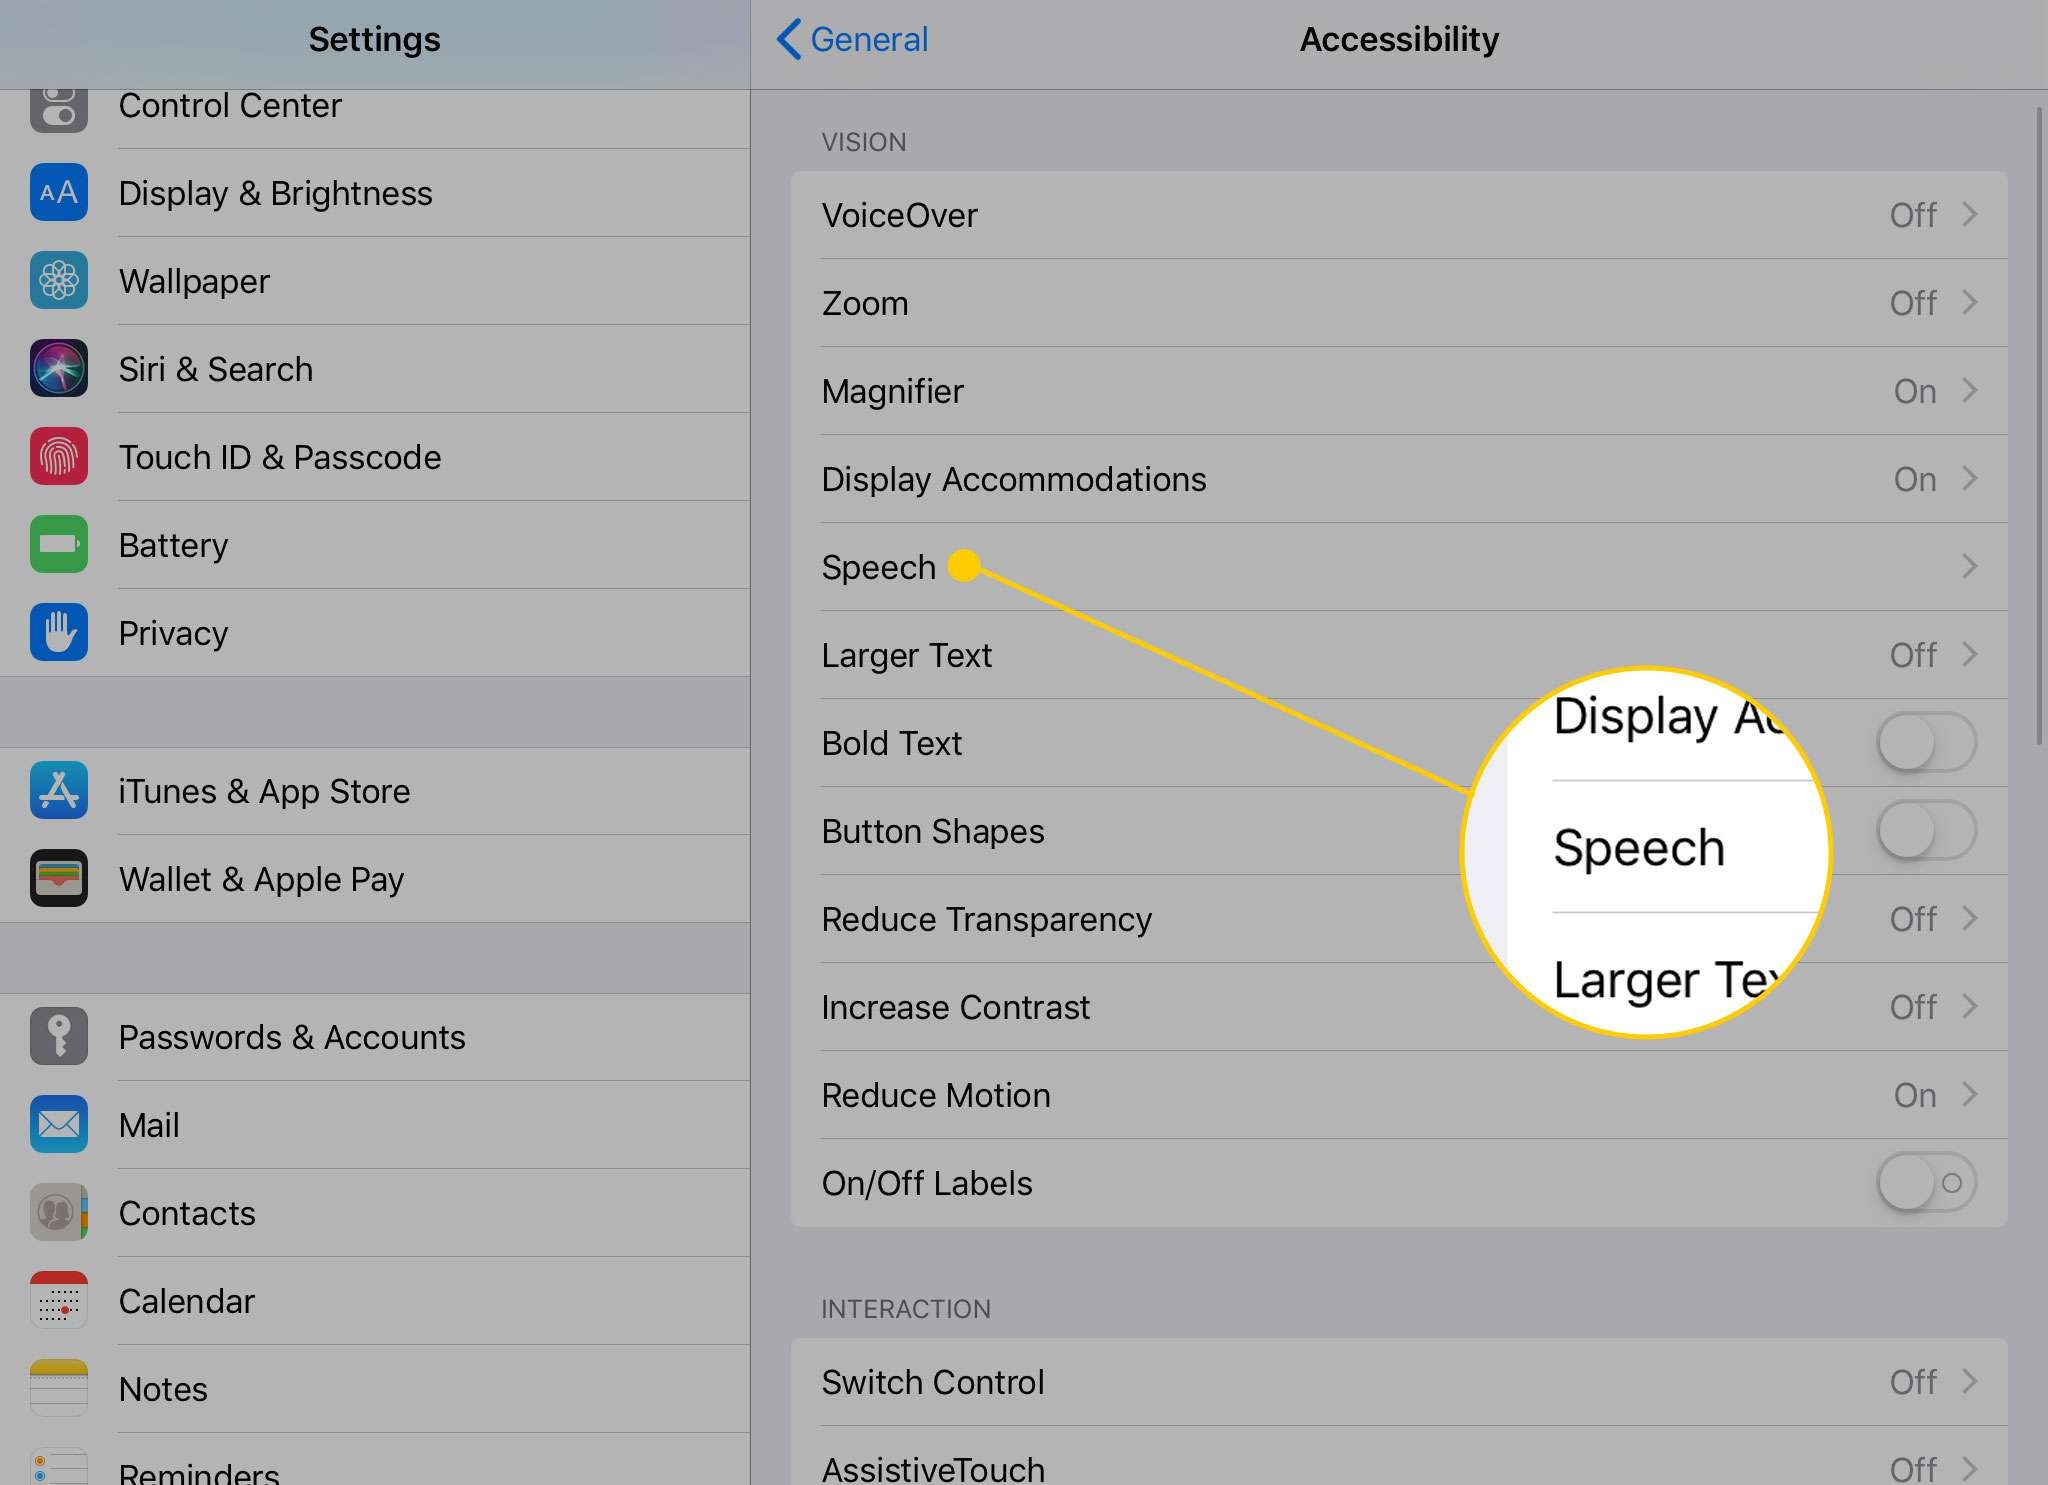 iPad Accessibility options with the Speech item highlighted